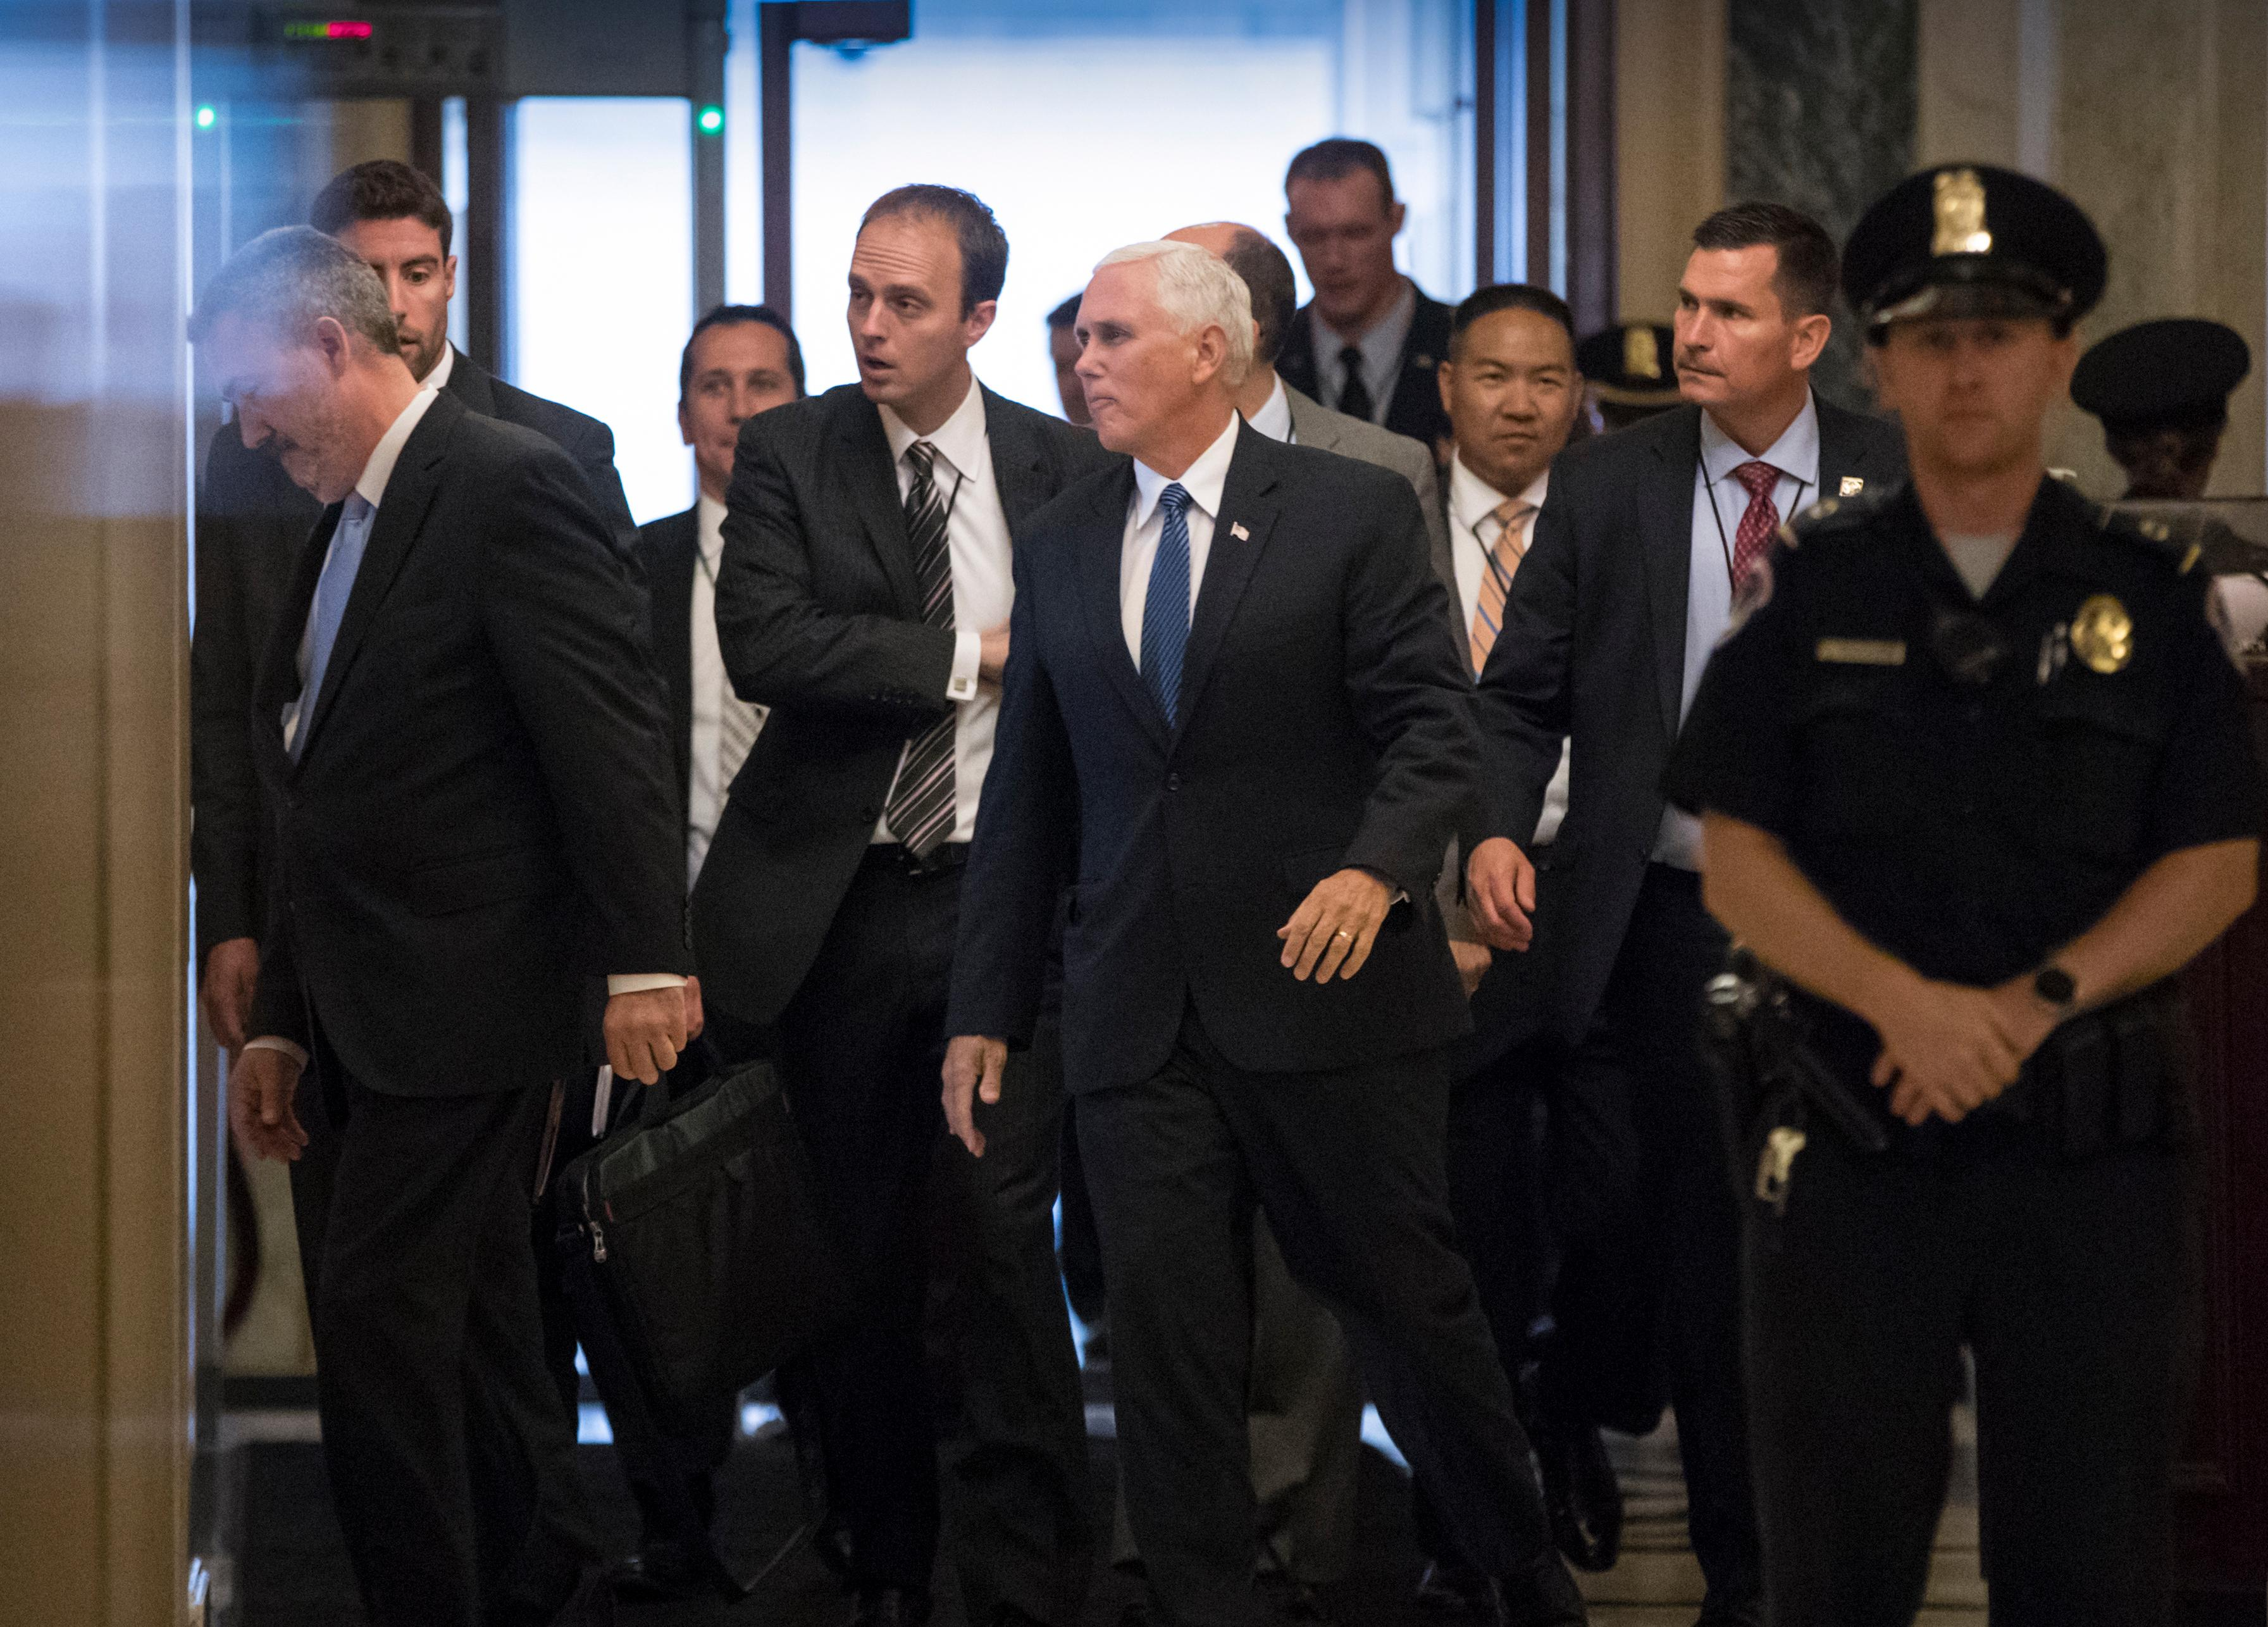 Vice President Mike Pence arrives on Capitol Hill in Washington, Thursday, July 13, 2017, to meet with lawmakers on the Republican health care bill which is under attack from within the party. (AP Photo/J. Scott Applewhite)